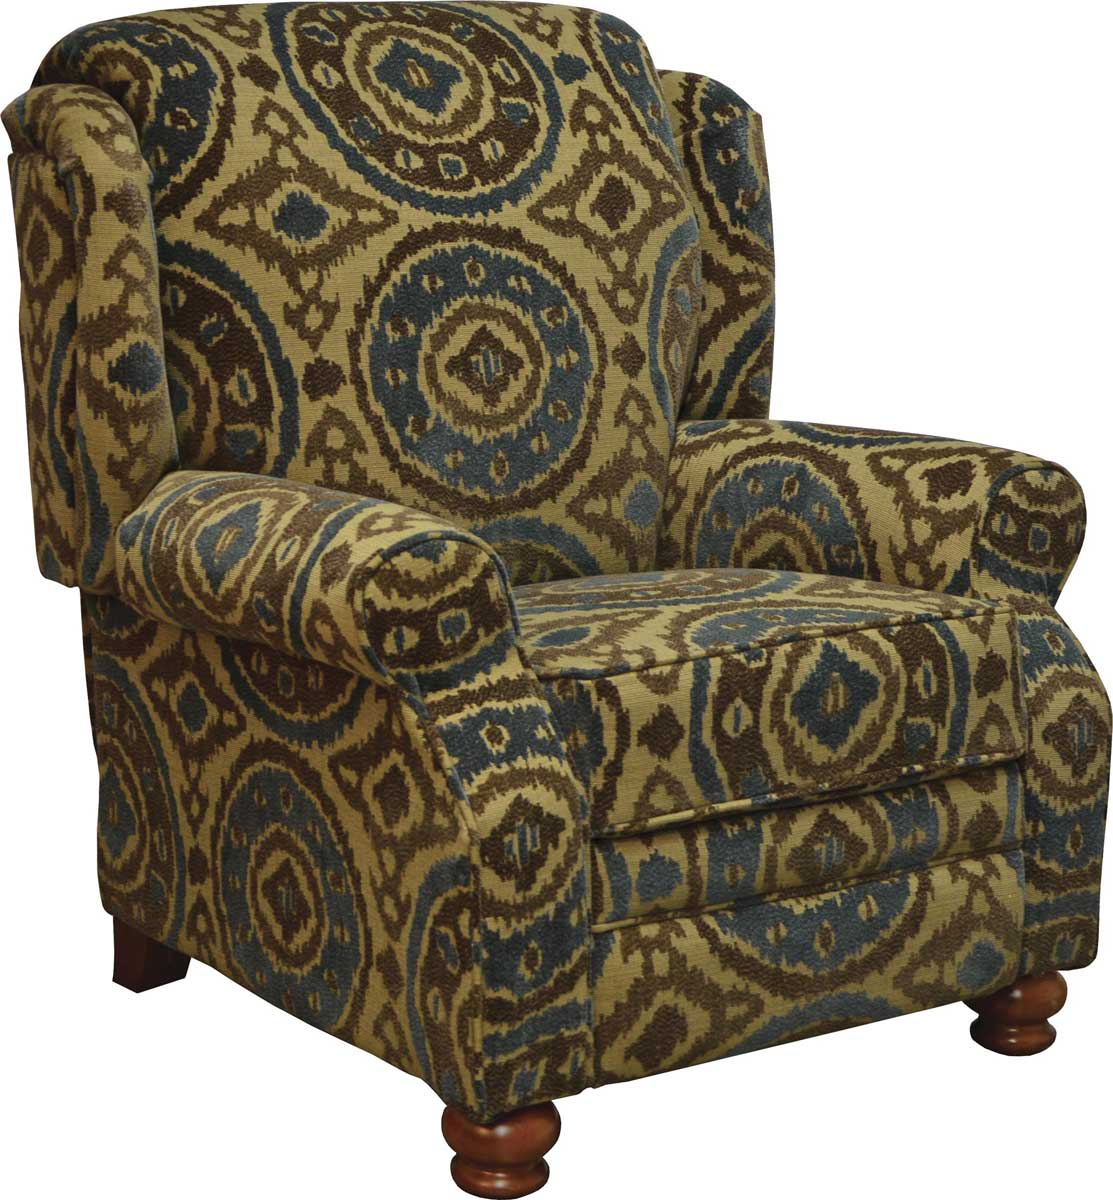 Jackson Belmont Reclining Chair - Peacock